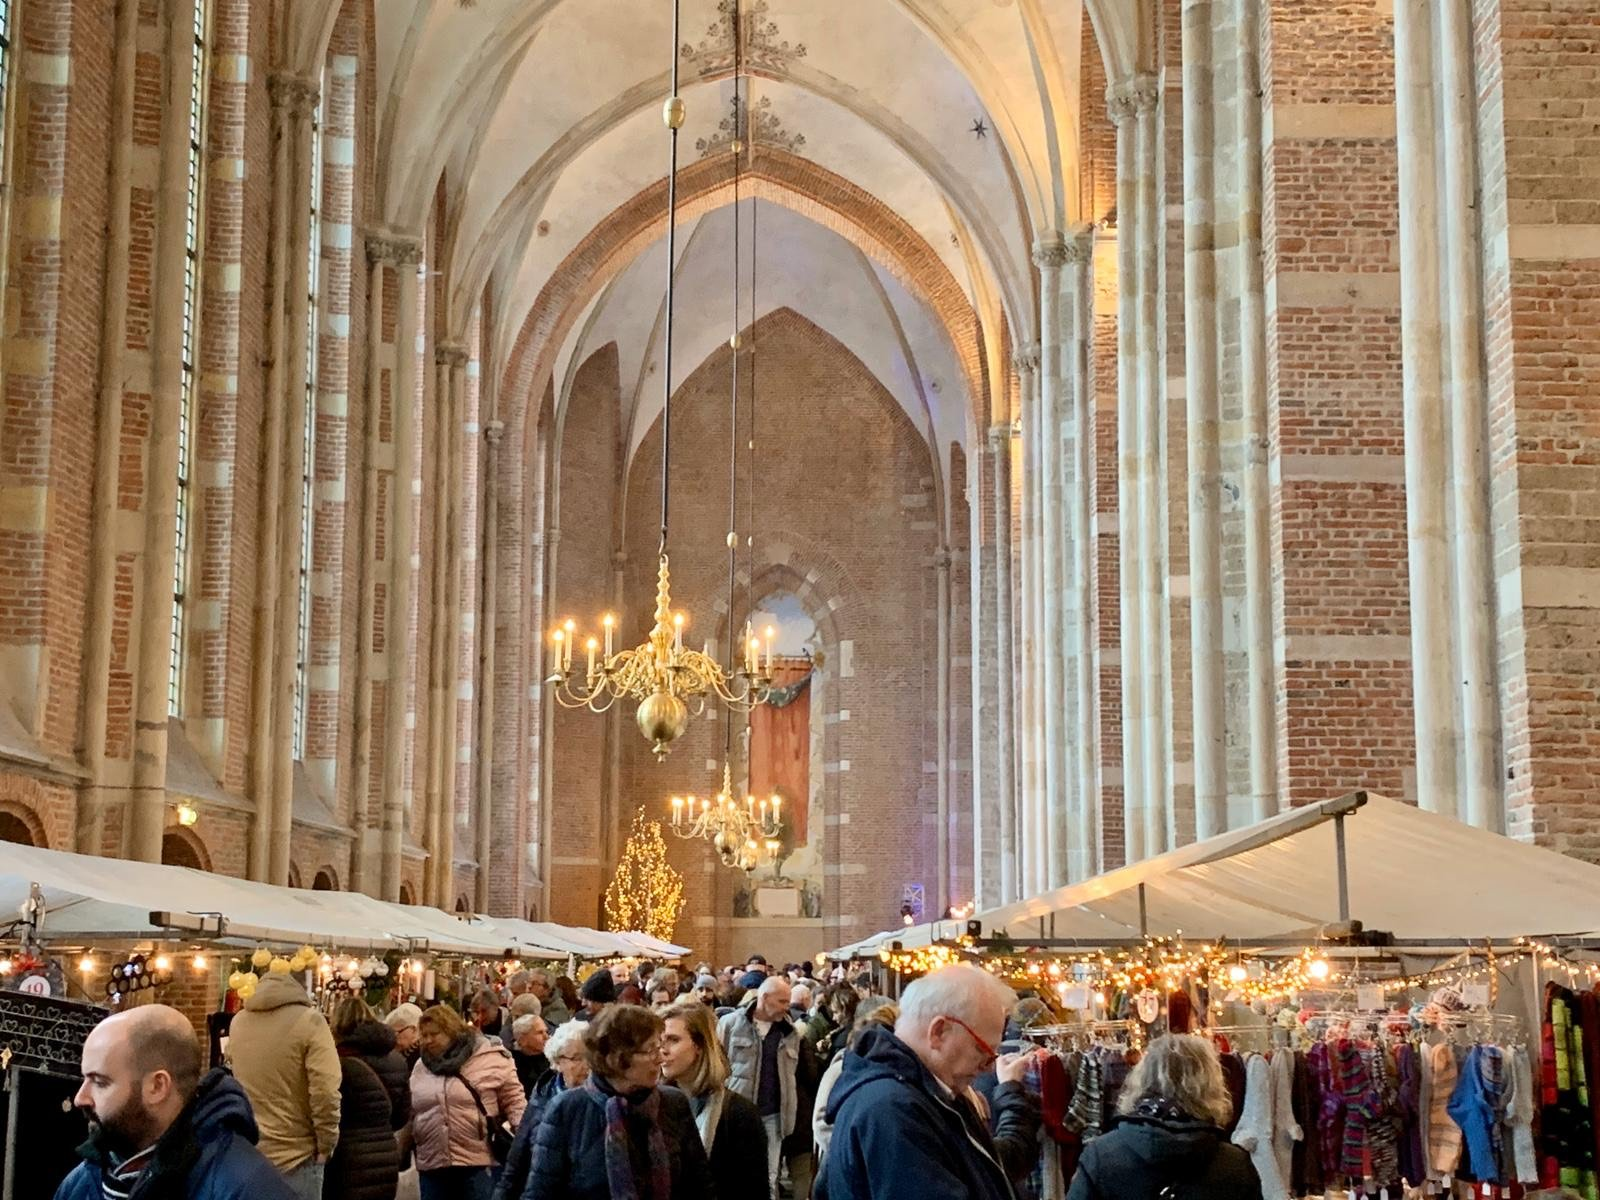 Kerstmarkt in de Lebuïnuskerk in Deventer